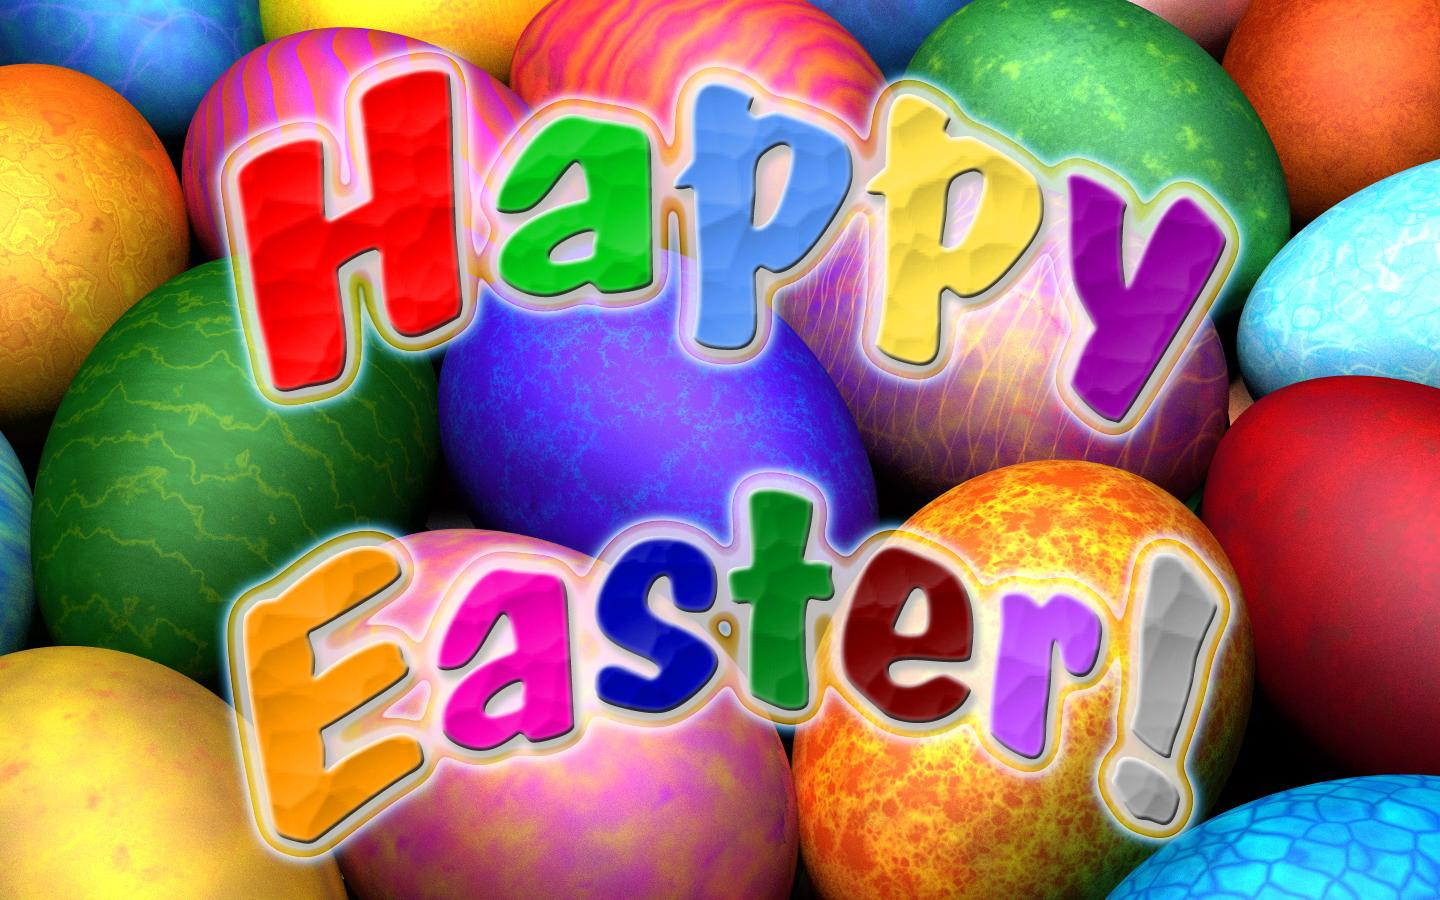 D Happy Easter Wallpapers Free Download HD For Desktop IPhone 1440x900